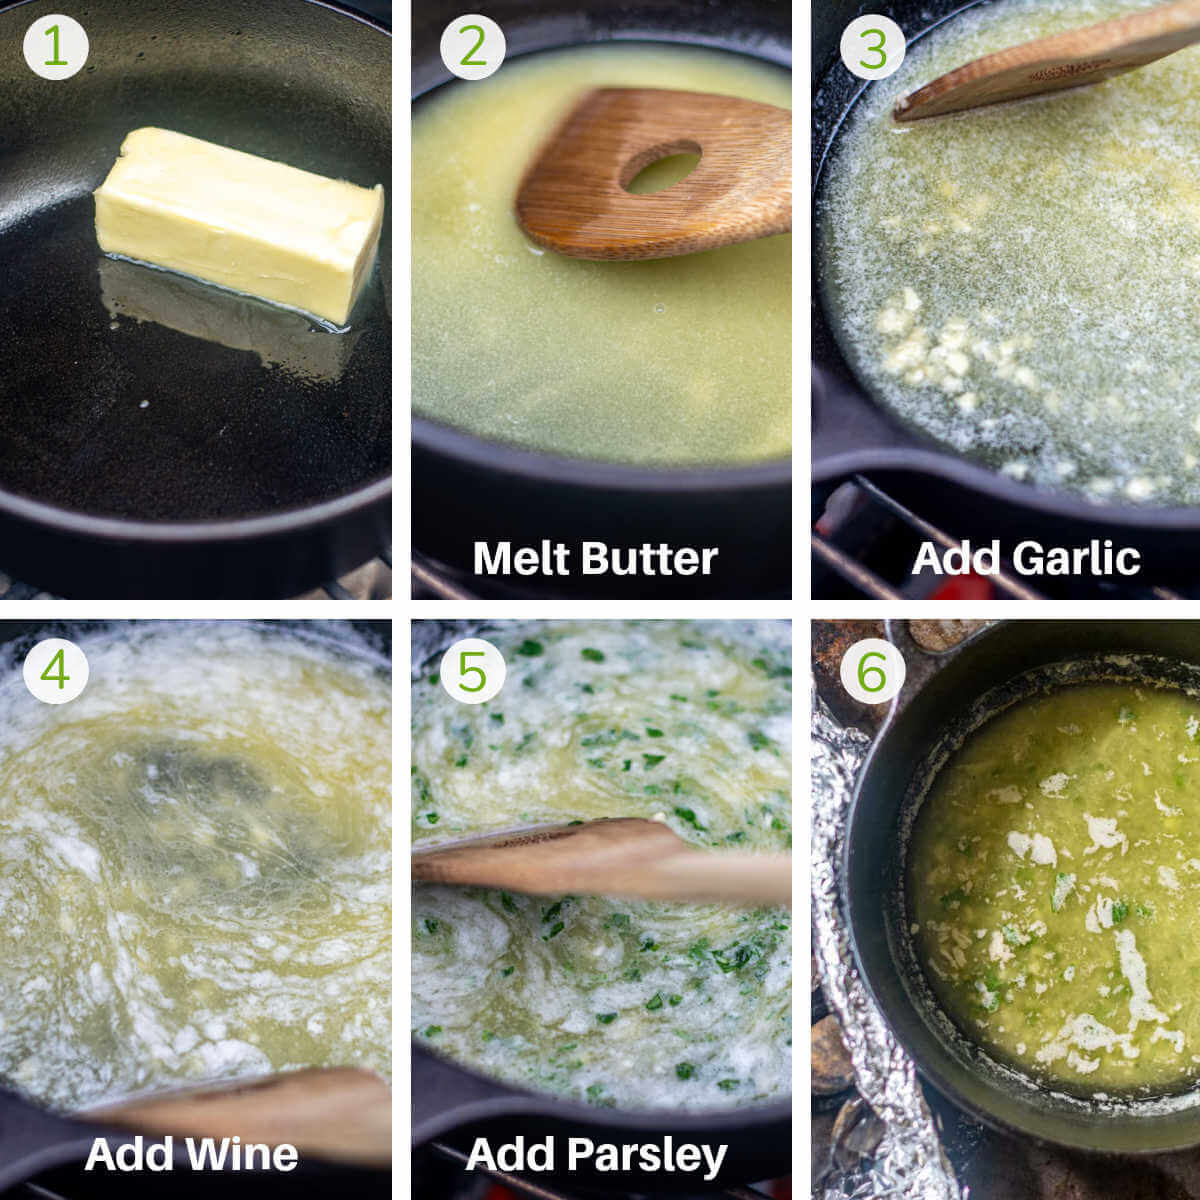 six process shots showing how to make the garlic wine butter for dipping.